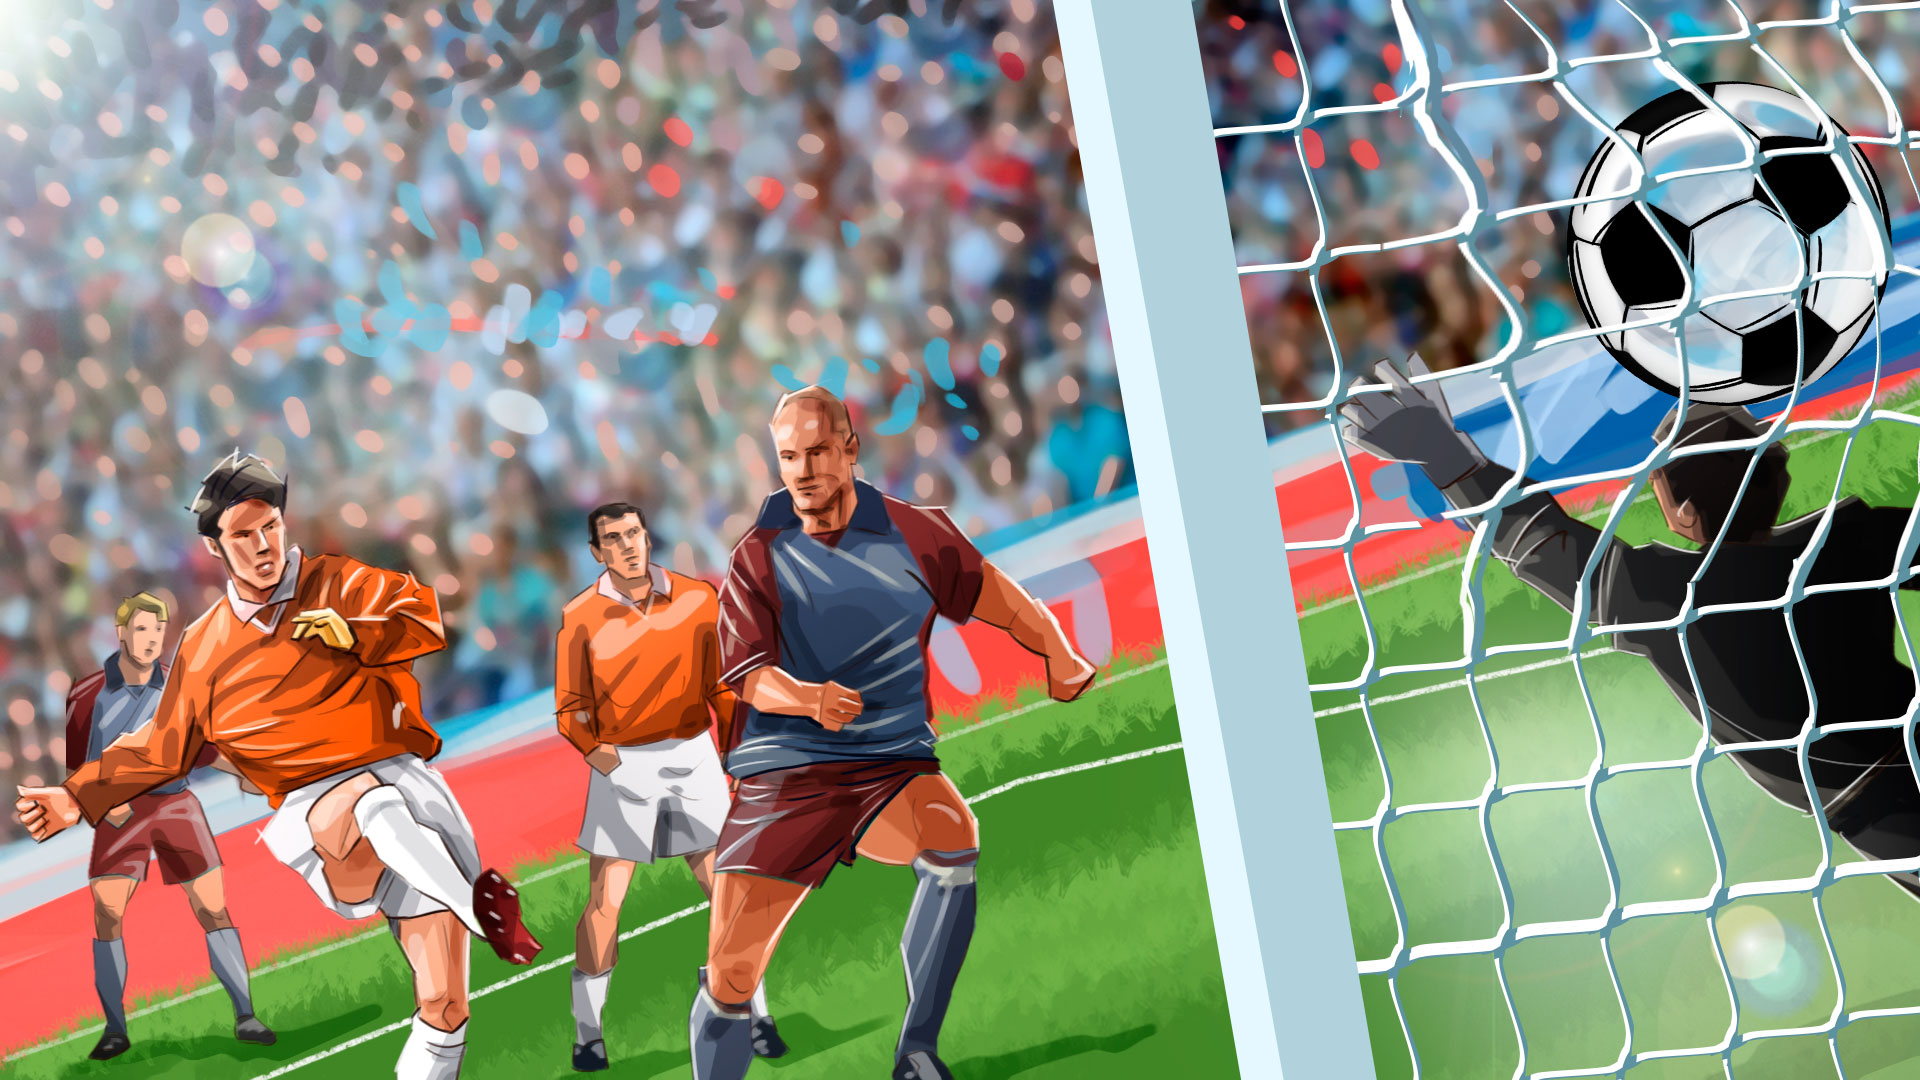 soccer game emotions illustration, 'Famous matches - illustrations for web game